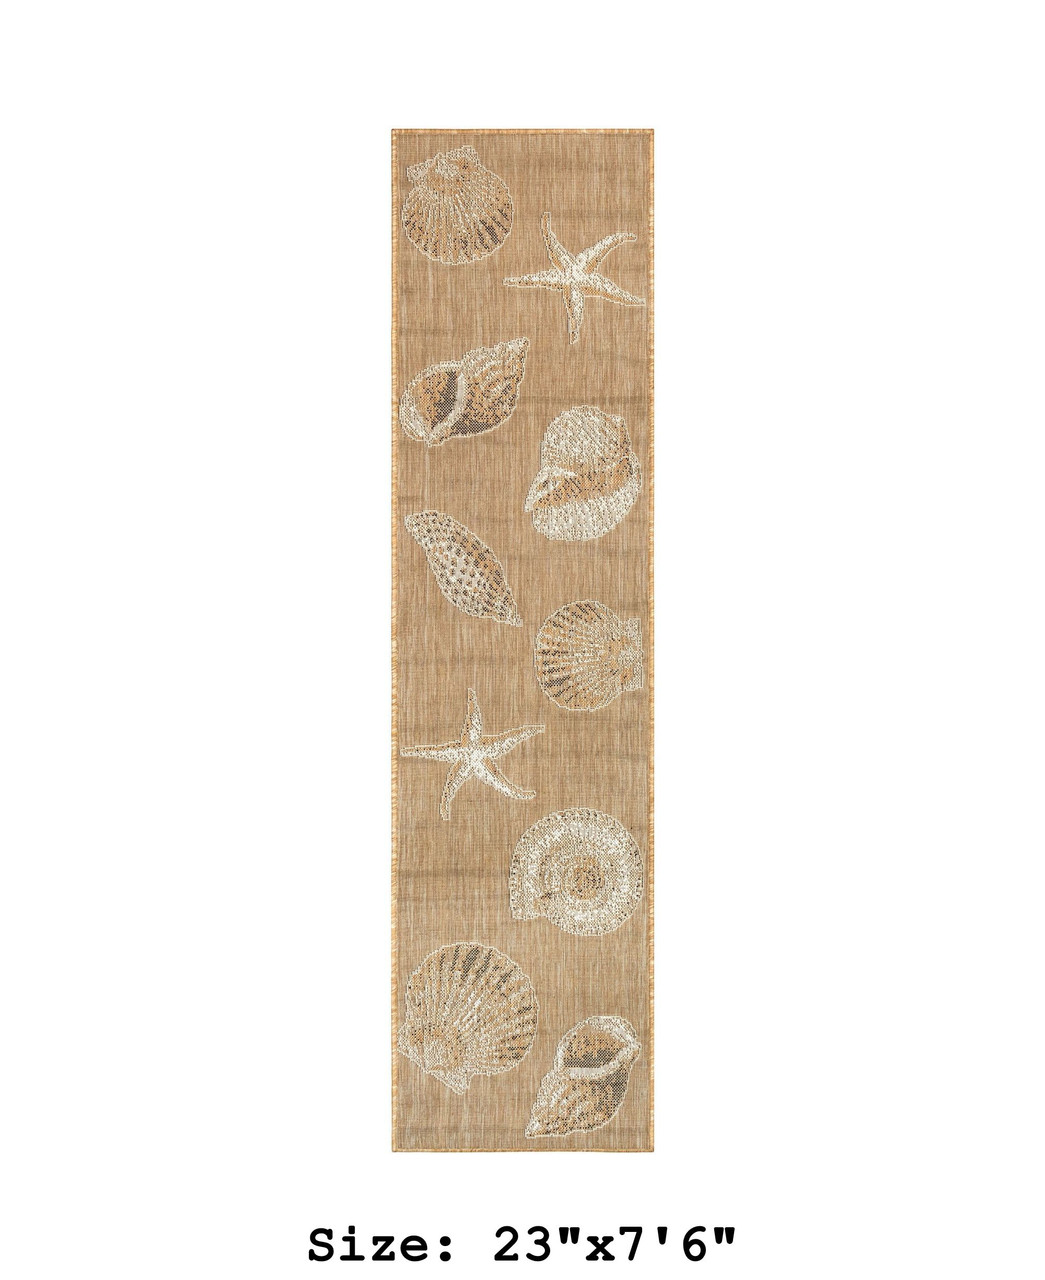 Sand Carmel Shells Indoor/Outdoor Rug -  Runner